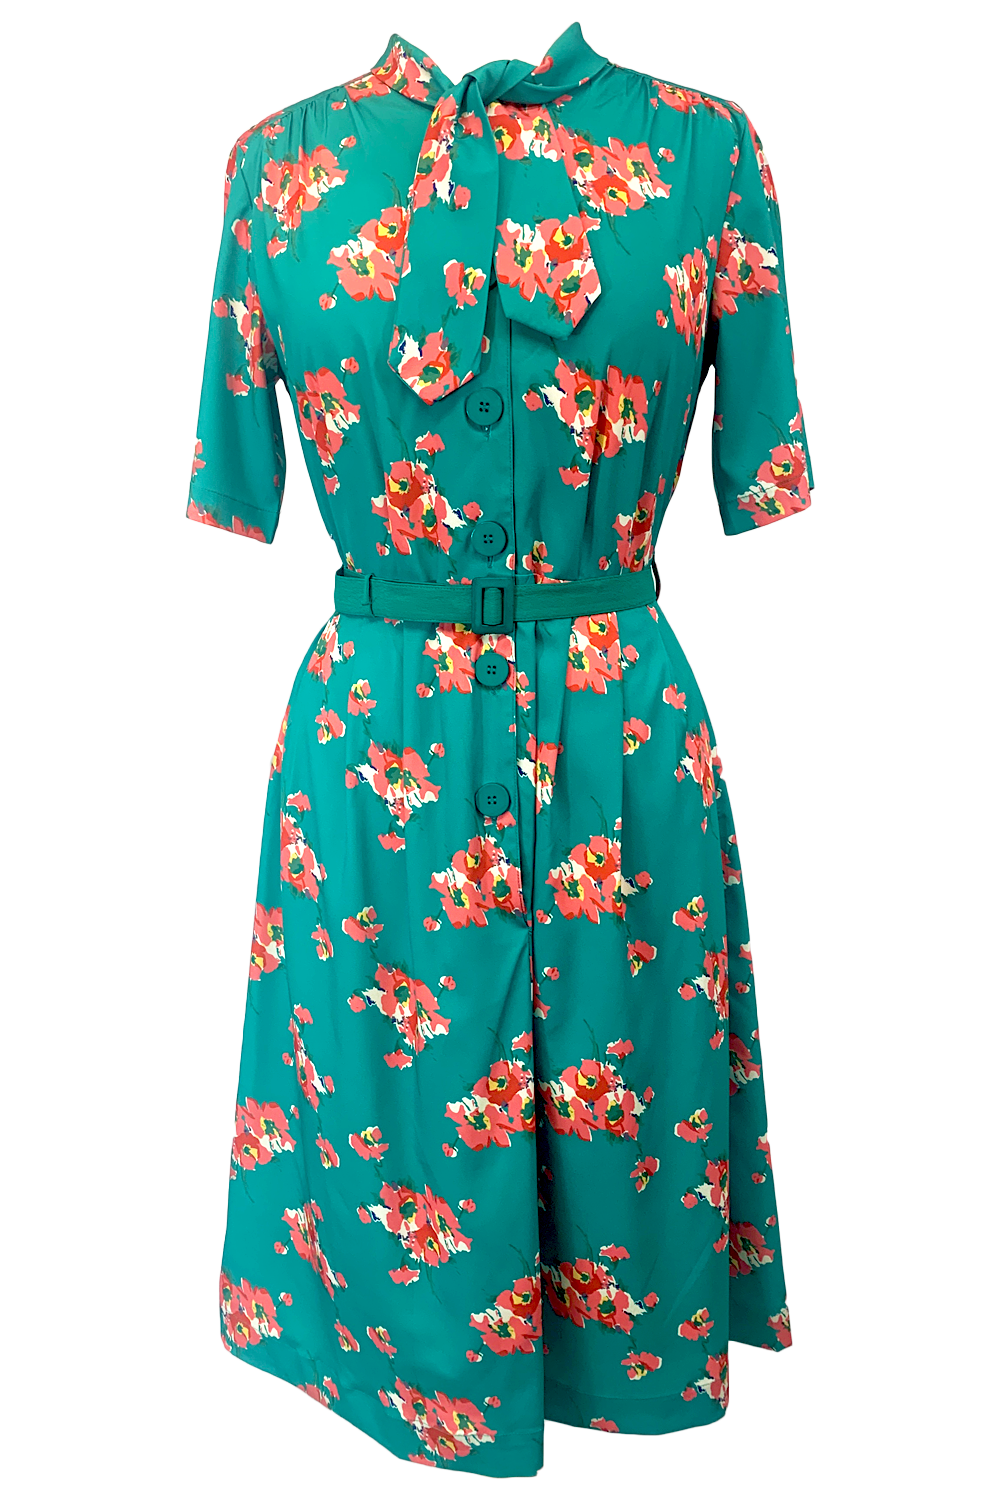 What Did Women Wear in the 1950s? 1950s Fashion Guide Casidy Pussy Bow Dress in Green Floral Perfect 1950s Style .. AW19 £49.00 AT vintagedancer.com